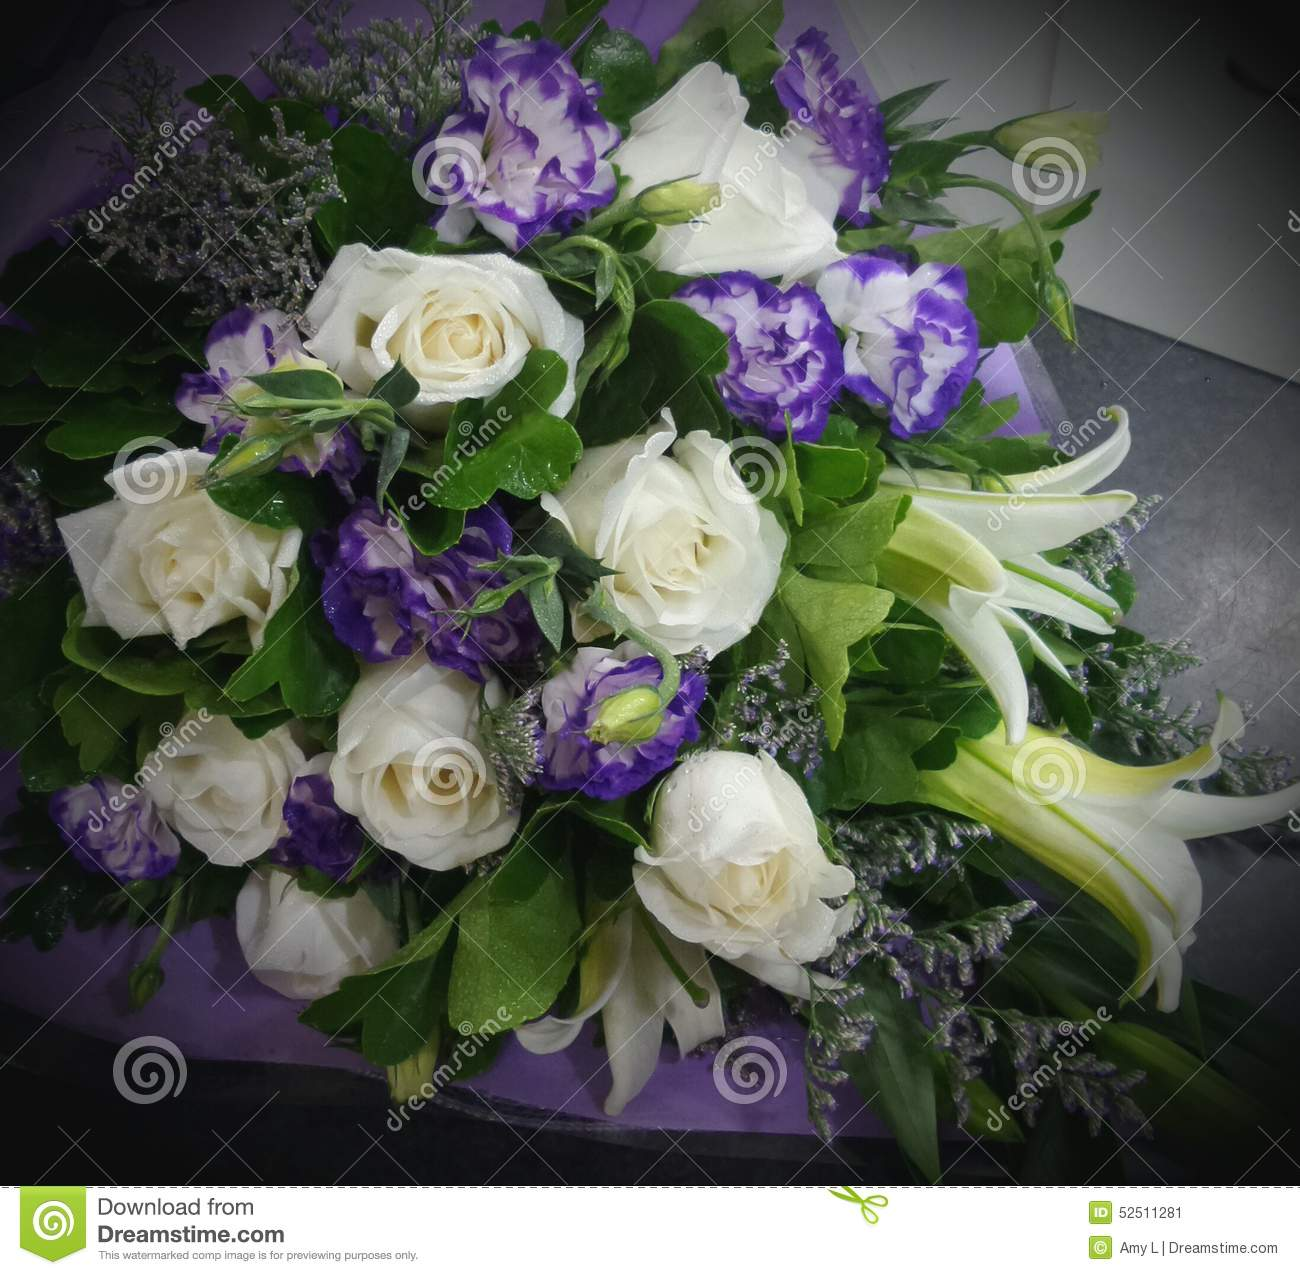 Beautiful Flowers Bouquet Rose Stock Image - Image of bouquet ...